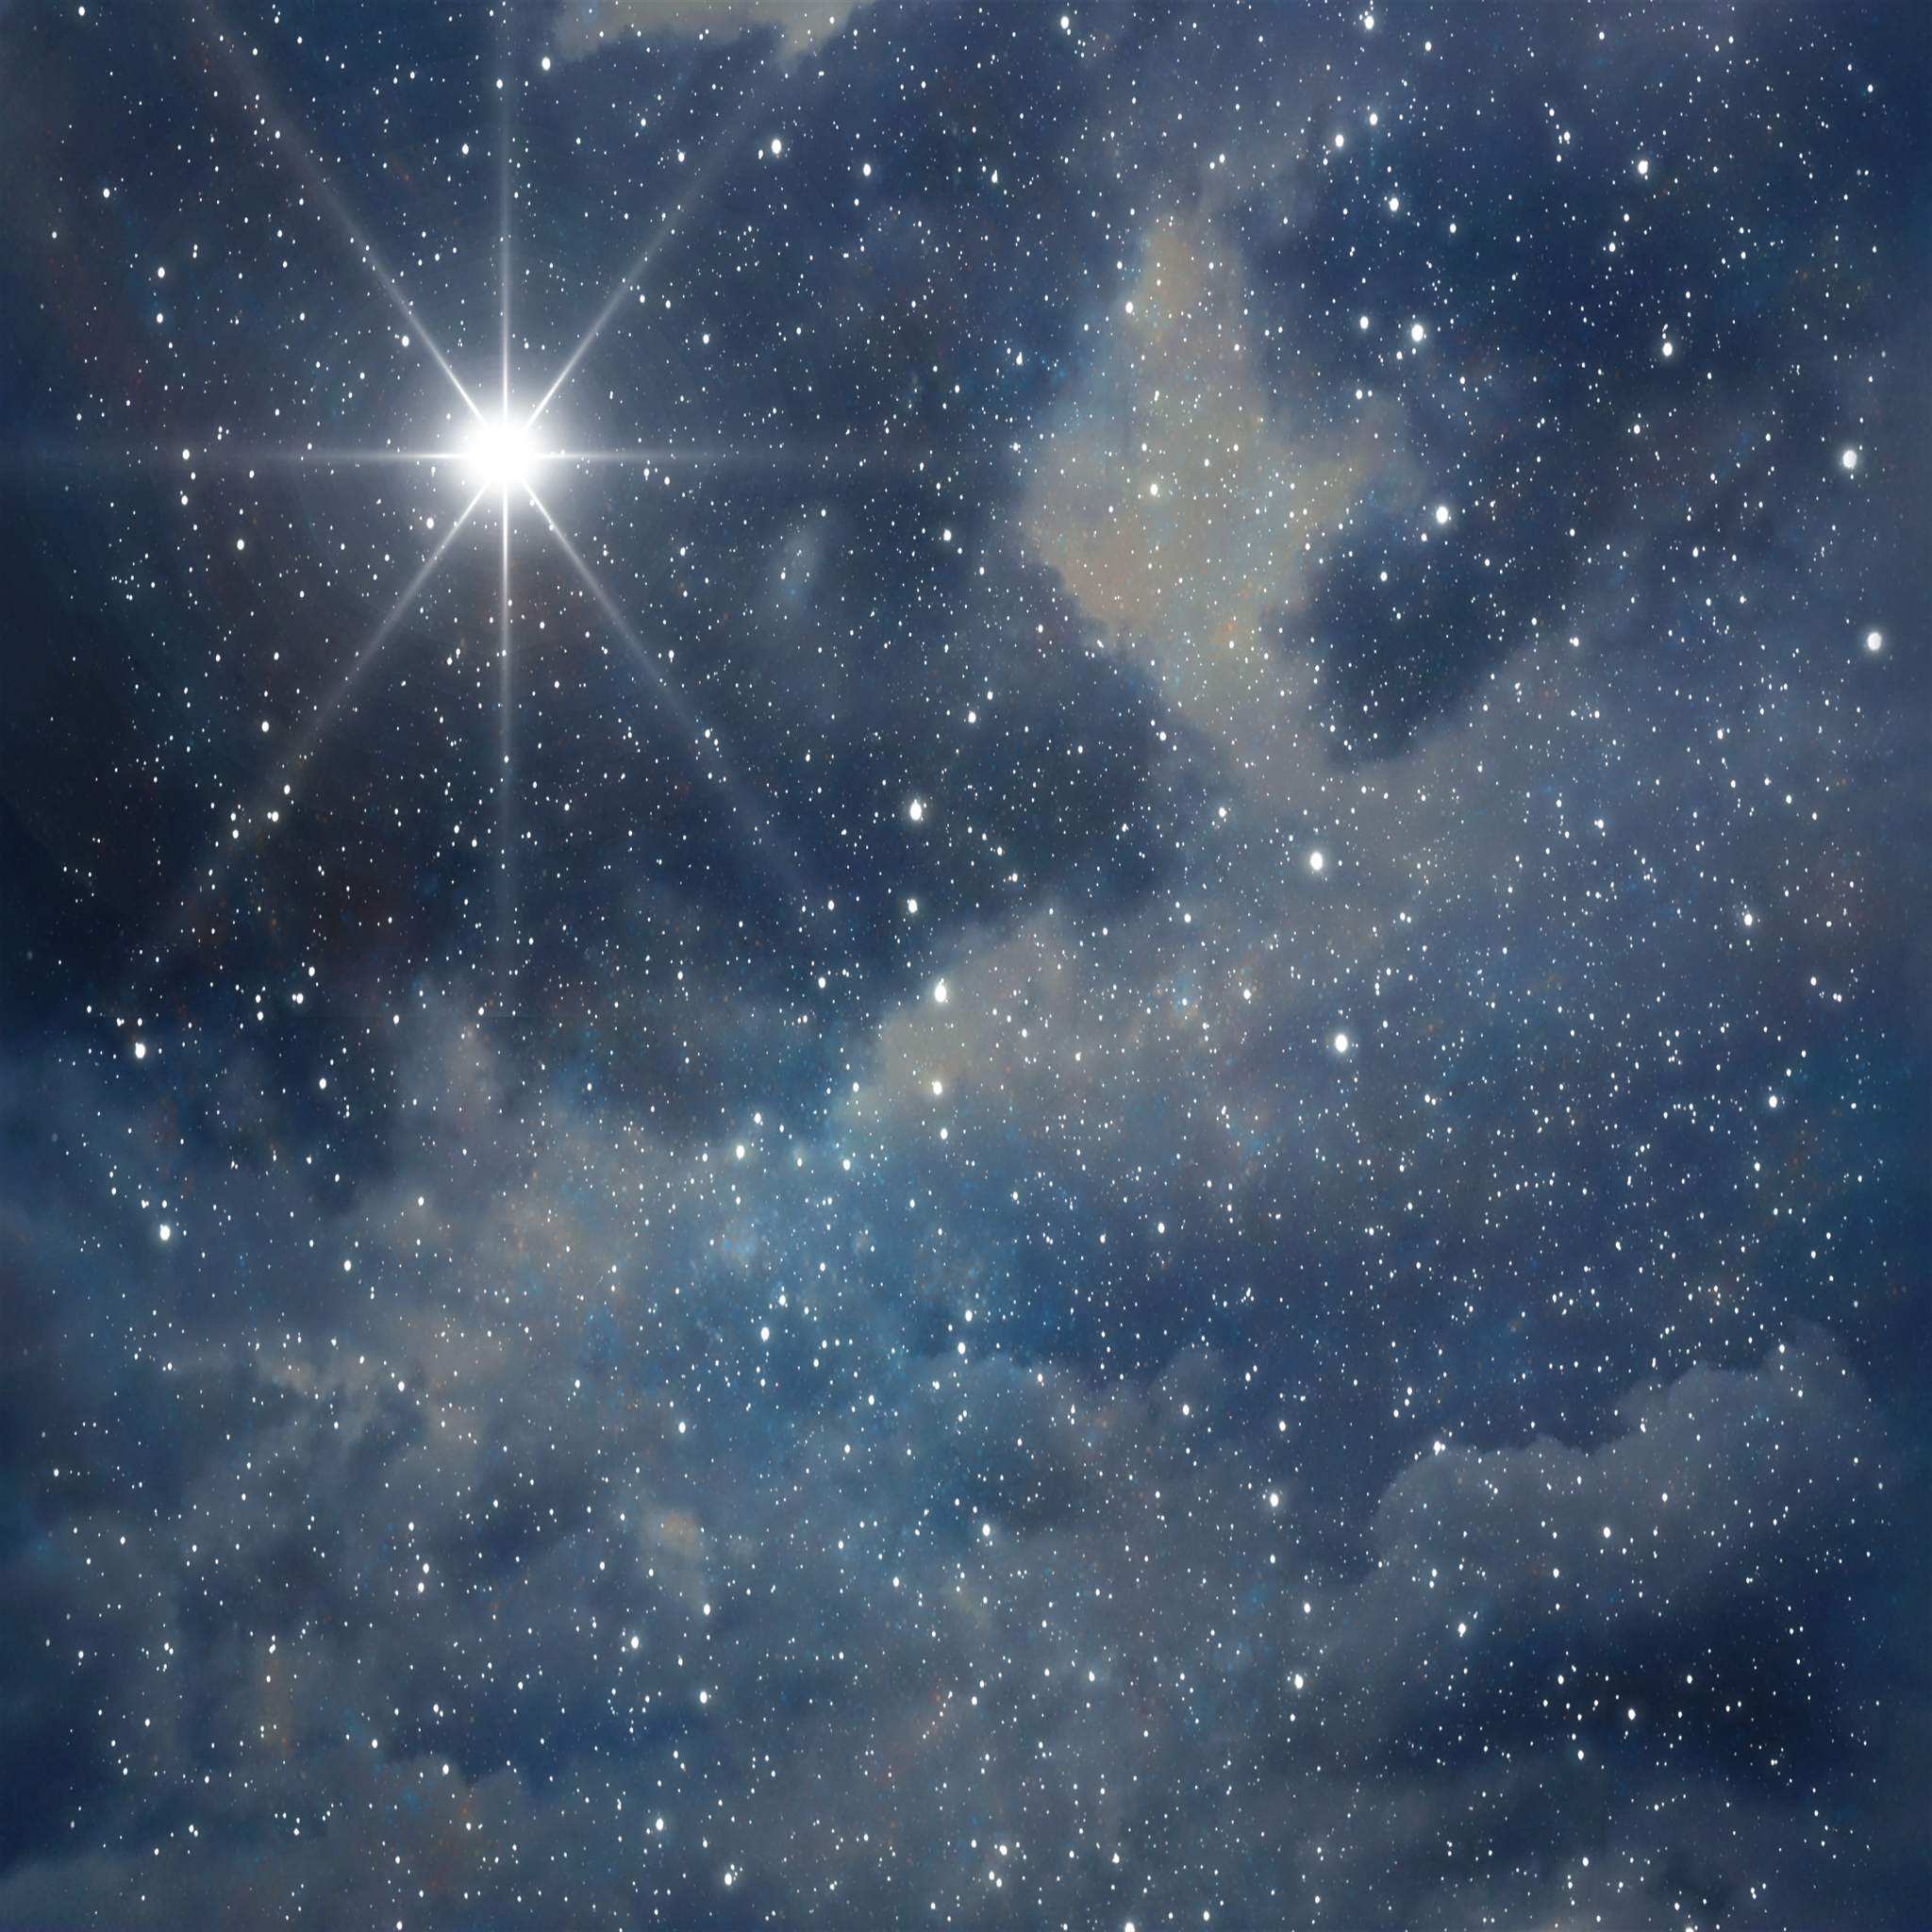 Stars In The Night Sky Tumblr Background night sky by - Starry Sky Background PNG